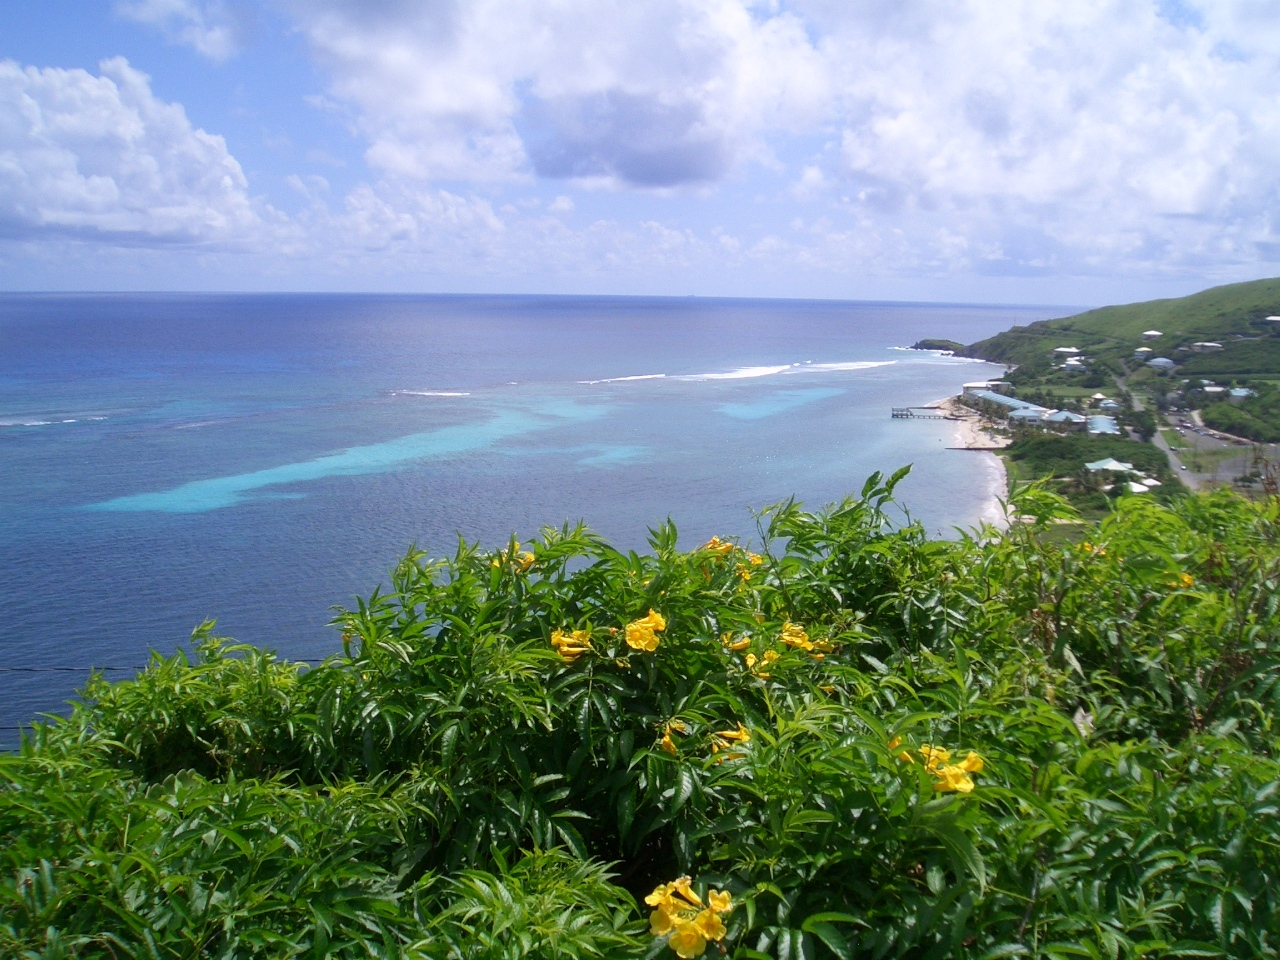 Nearby view of the stunning Caribbean Se